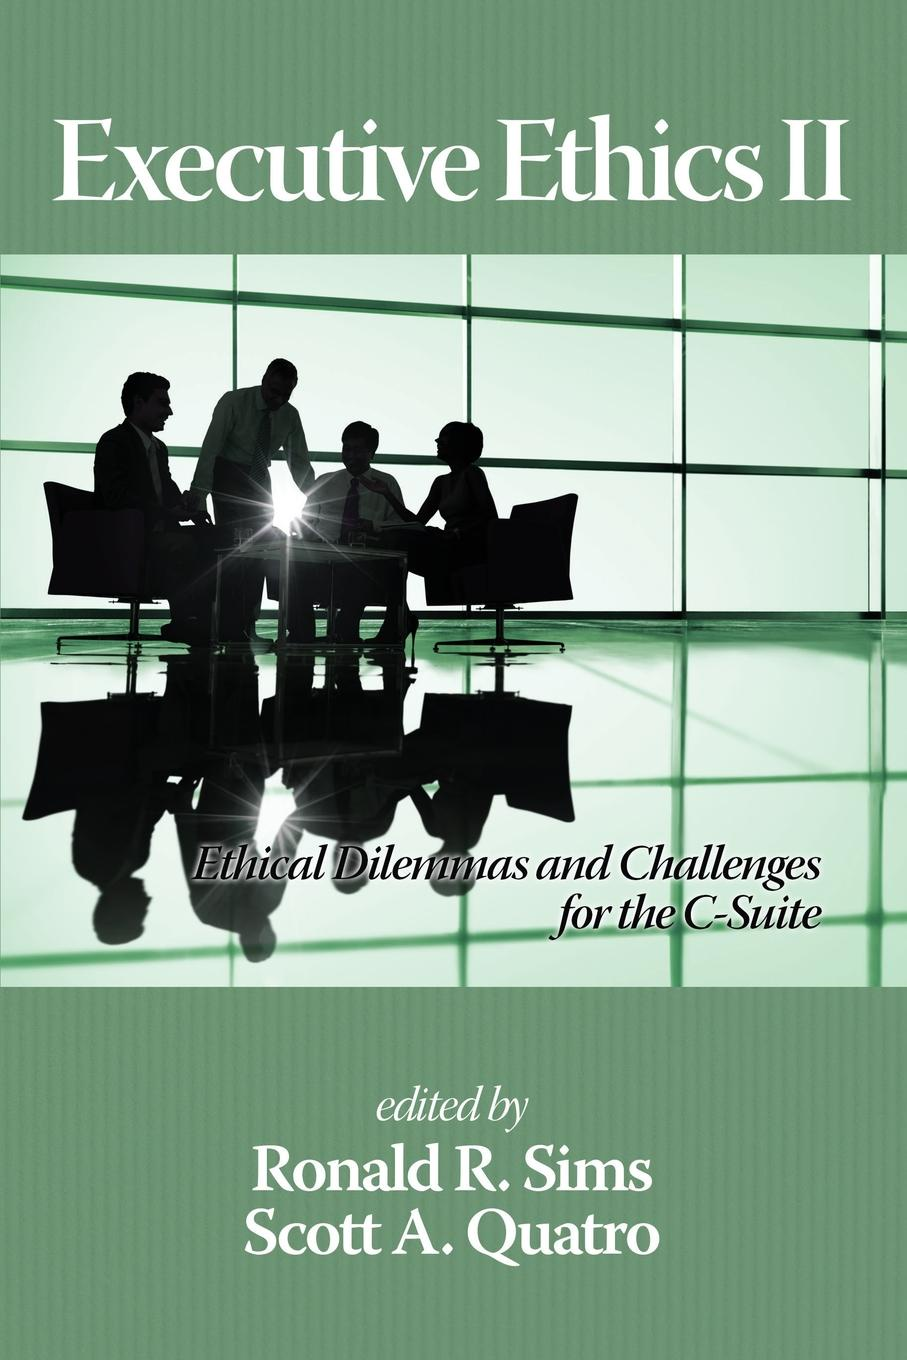 Executive Ethics II. Ethical Dilemmas and Challenges for the C Suite, 2nd Edition bevan s brinkley i bajorek z cooper c 21st century workforces and workplaces the challenges and opportunities for future work practices and labour markets